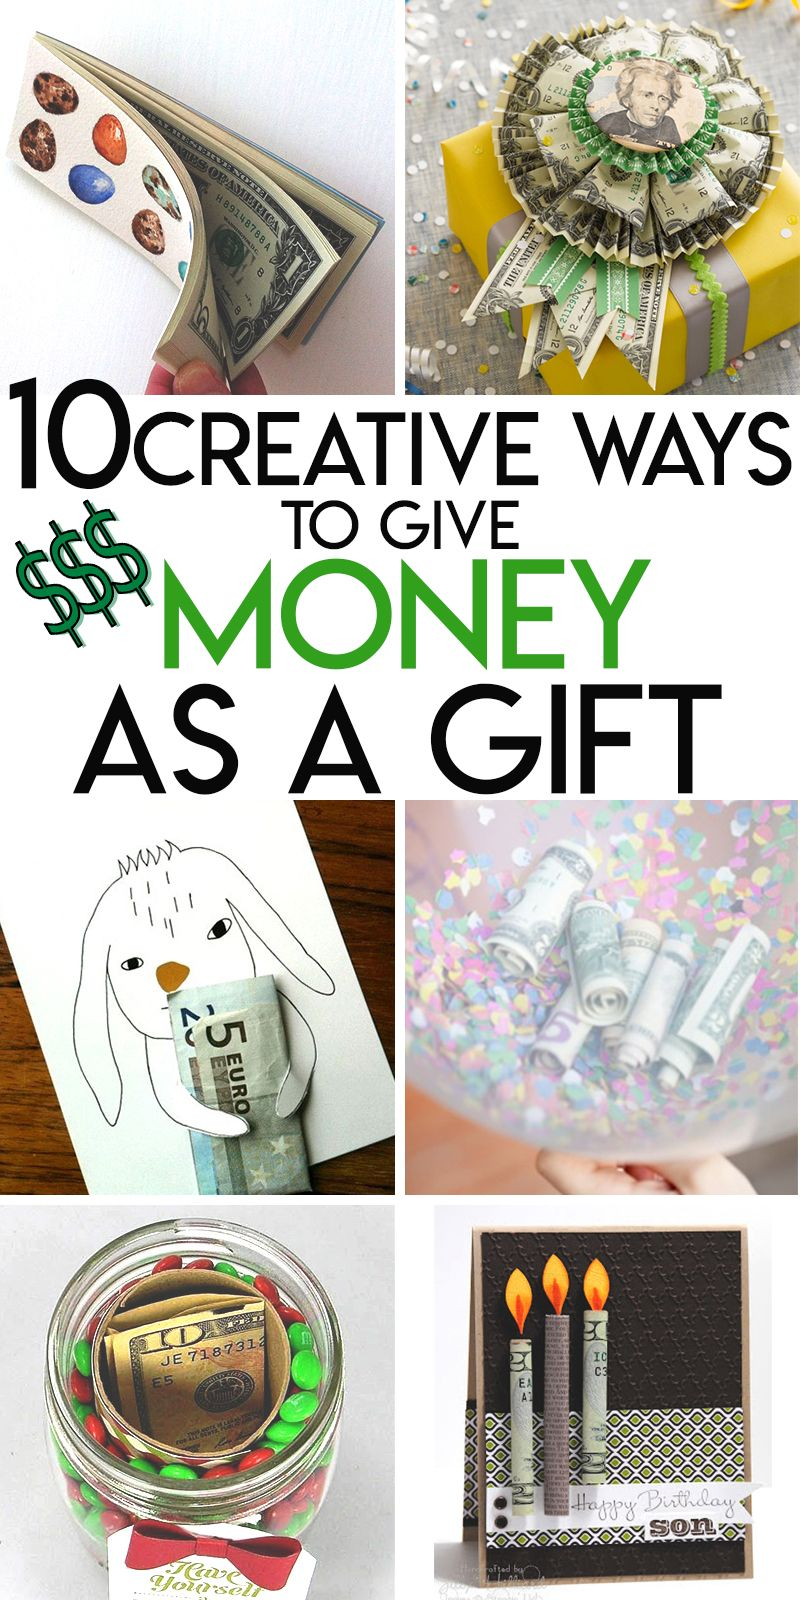 Creative Ways To Give Money For Christmas Present.10 Creative Ways To Package Up And Give Cash As A Gift